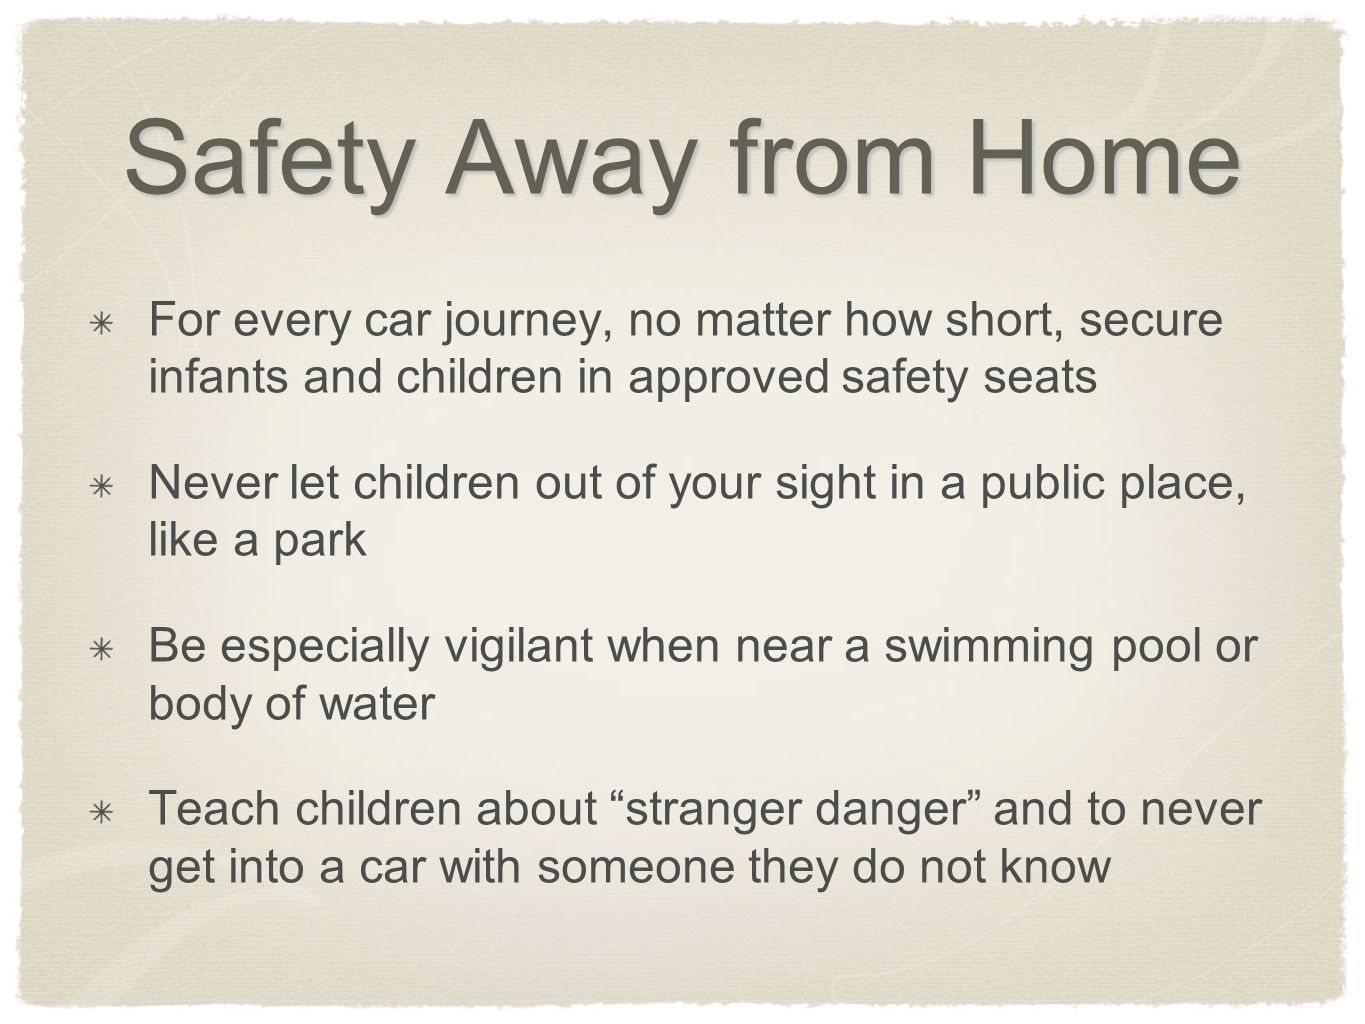 Safety Away from Home For every car journey, no matter how short, secure infants and children in approved safety seats Never let children out of your sight in a public place, like a park Be especially vigilant when near a swimming pool or body of water Teach children about stranger danger and to never get into a car with someone they do not know